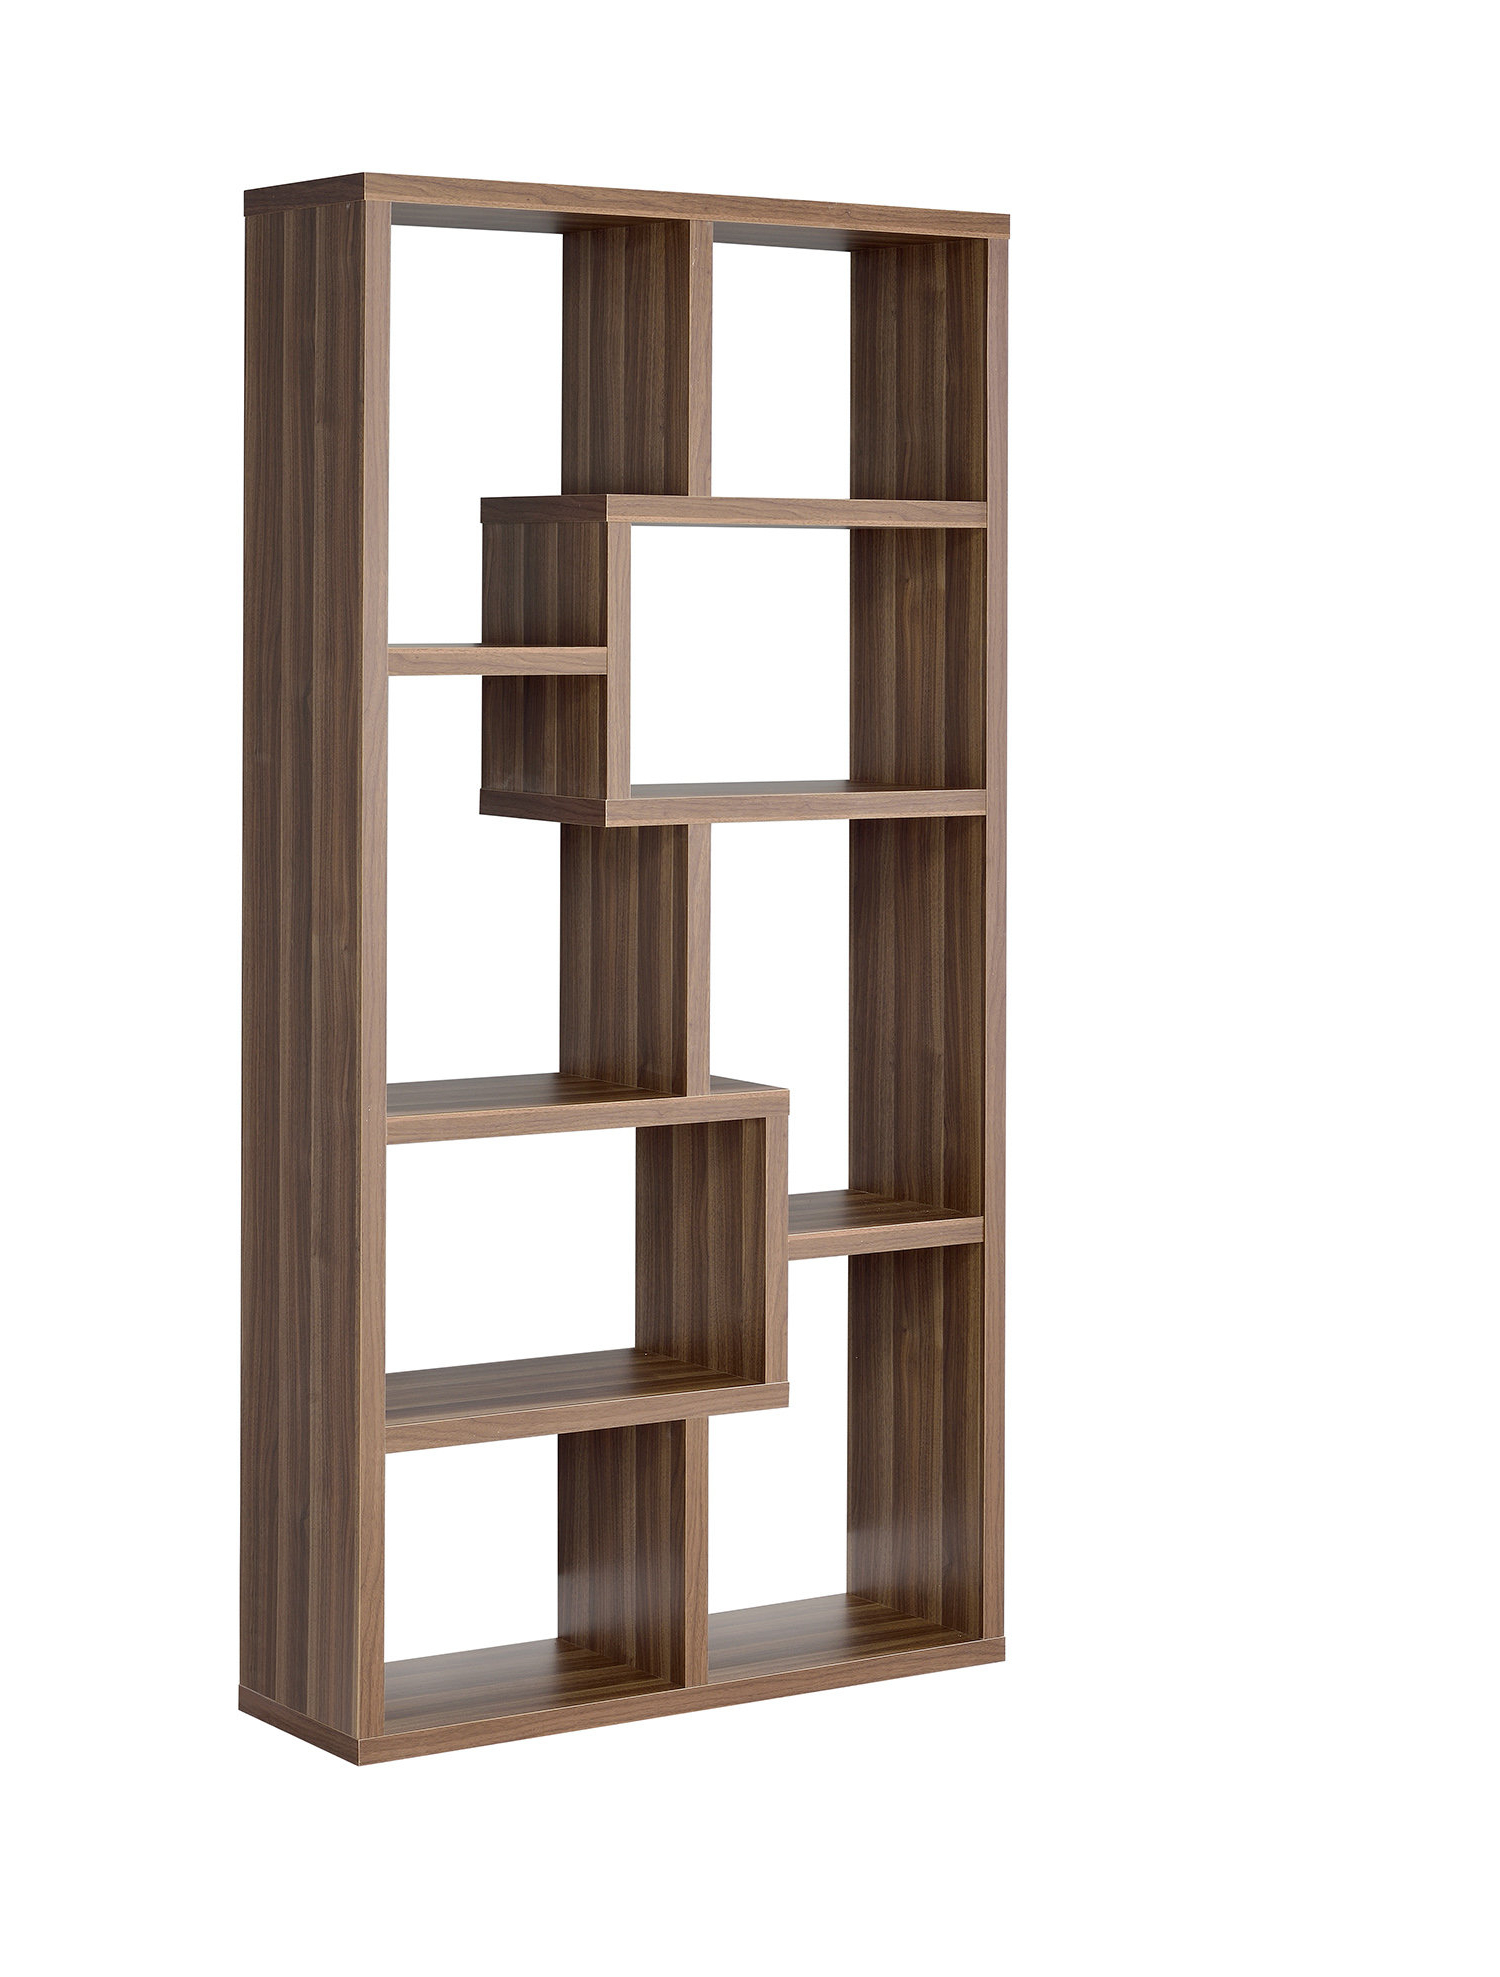 Flavius Geometric Bookcase Intended For Newest Ansley Geometric Bookcases (View 9 of 20)